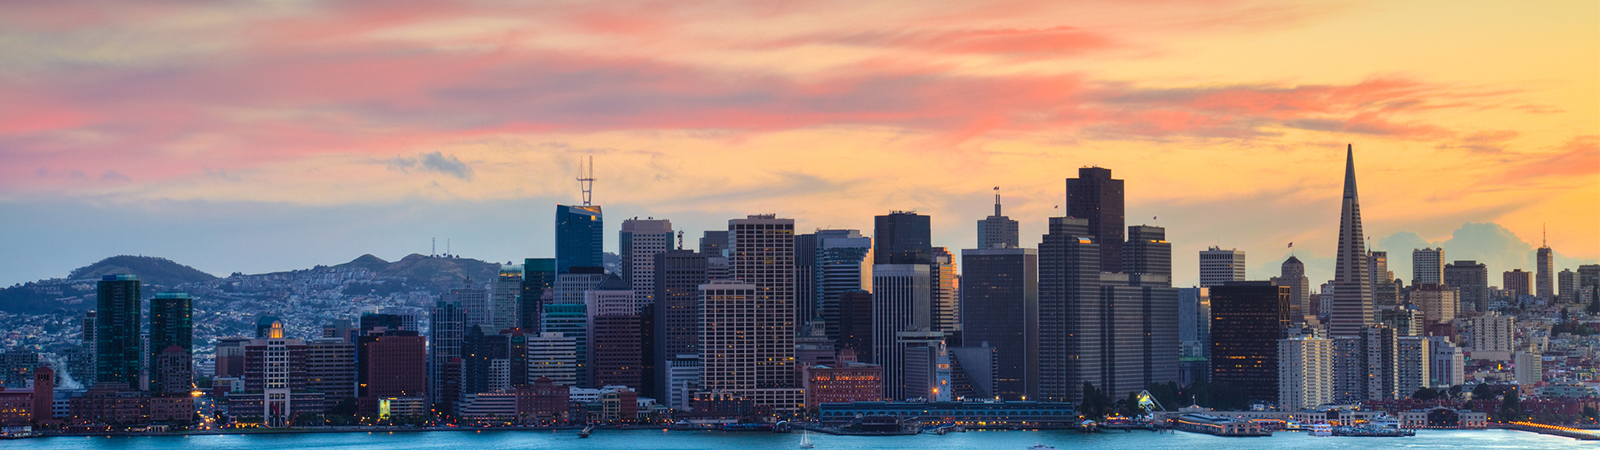 San Francisco City skyline photo